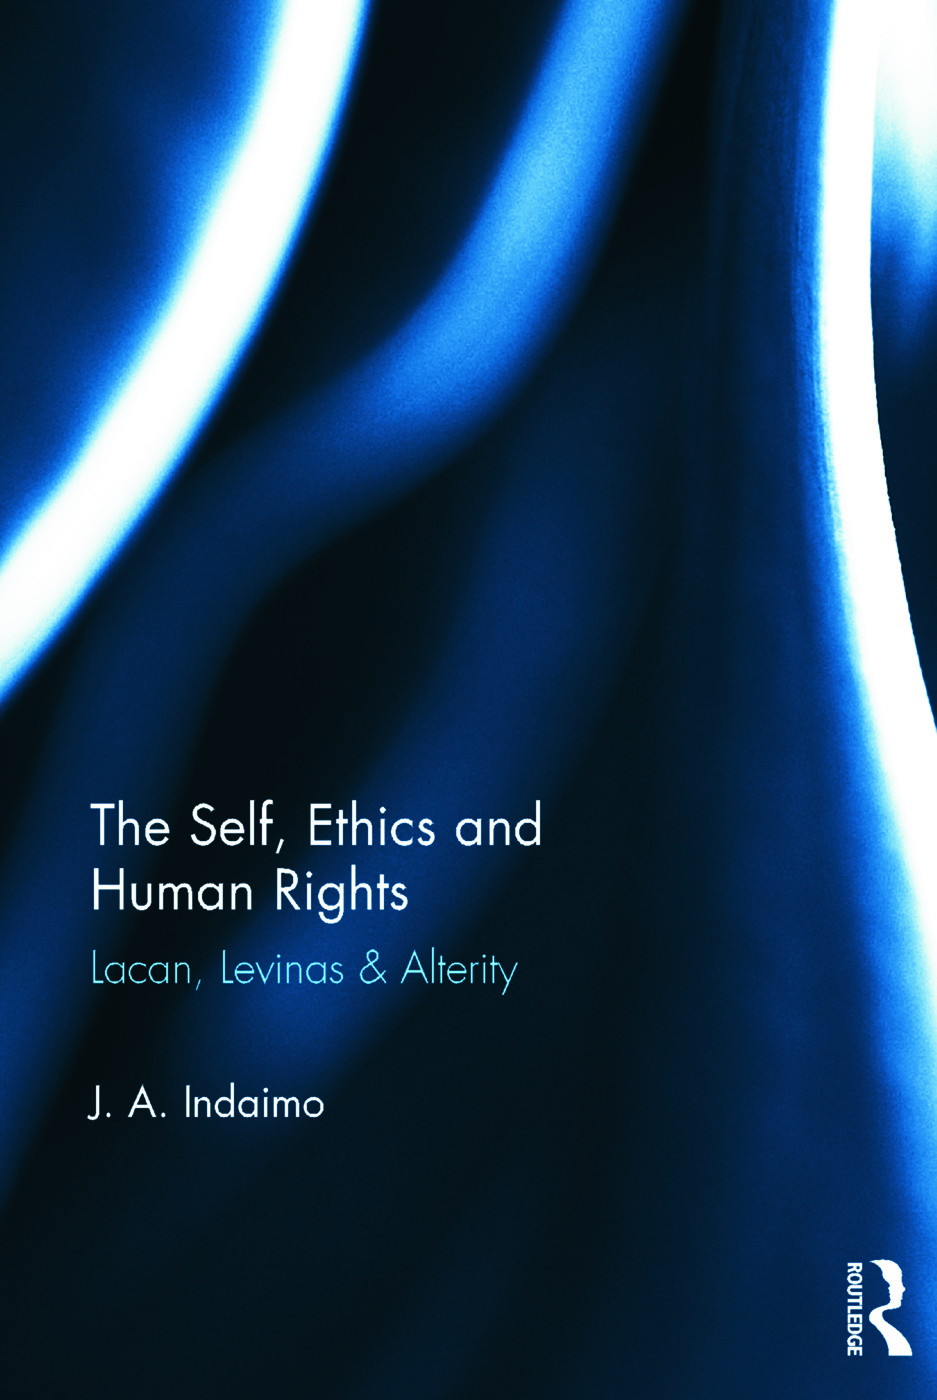 The Self, Ethics & Human Rights book cover